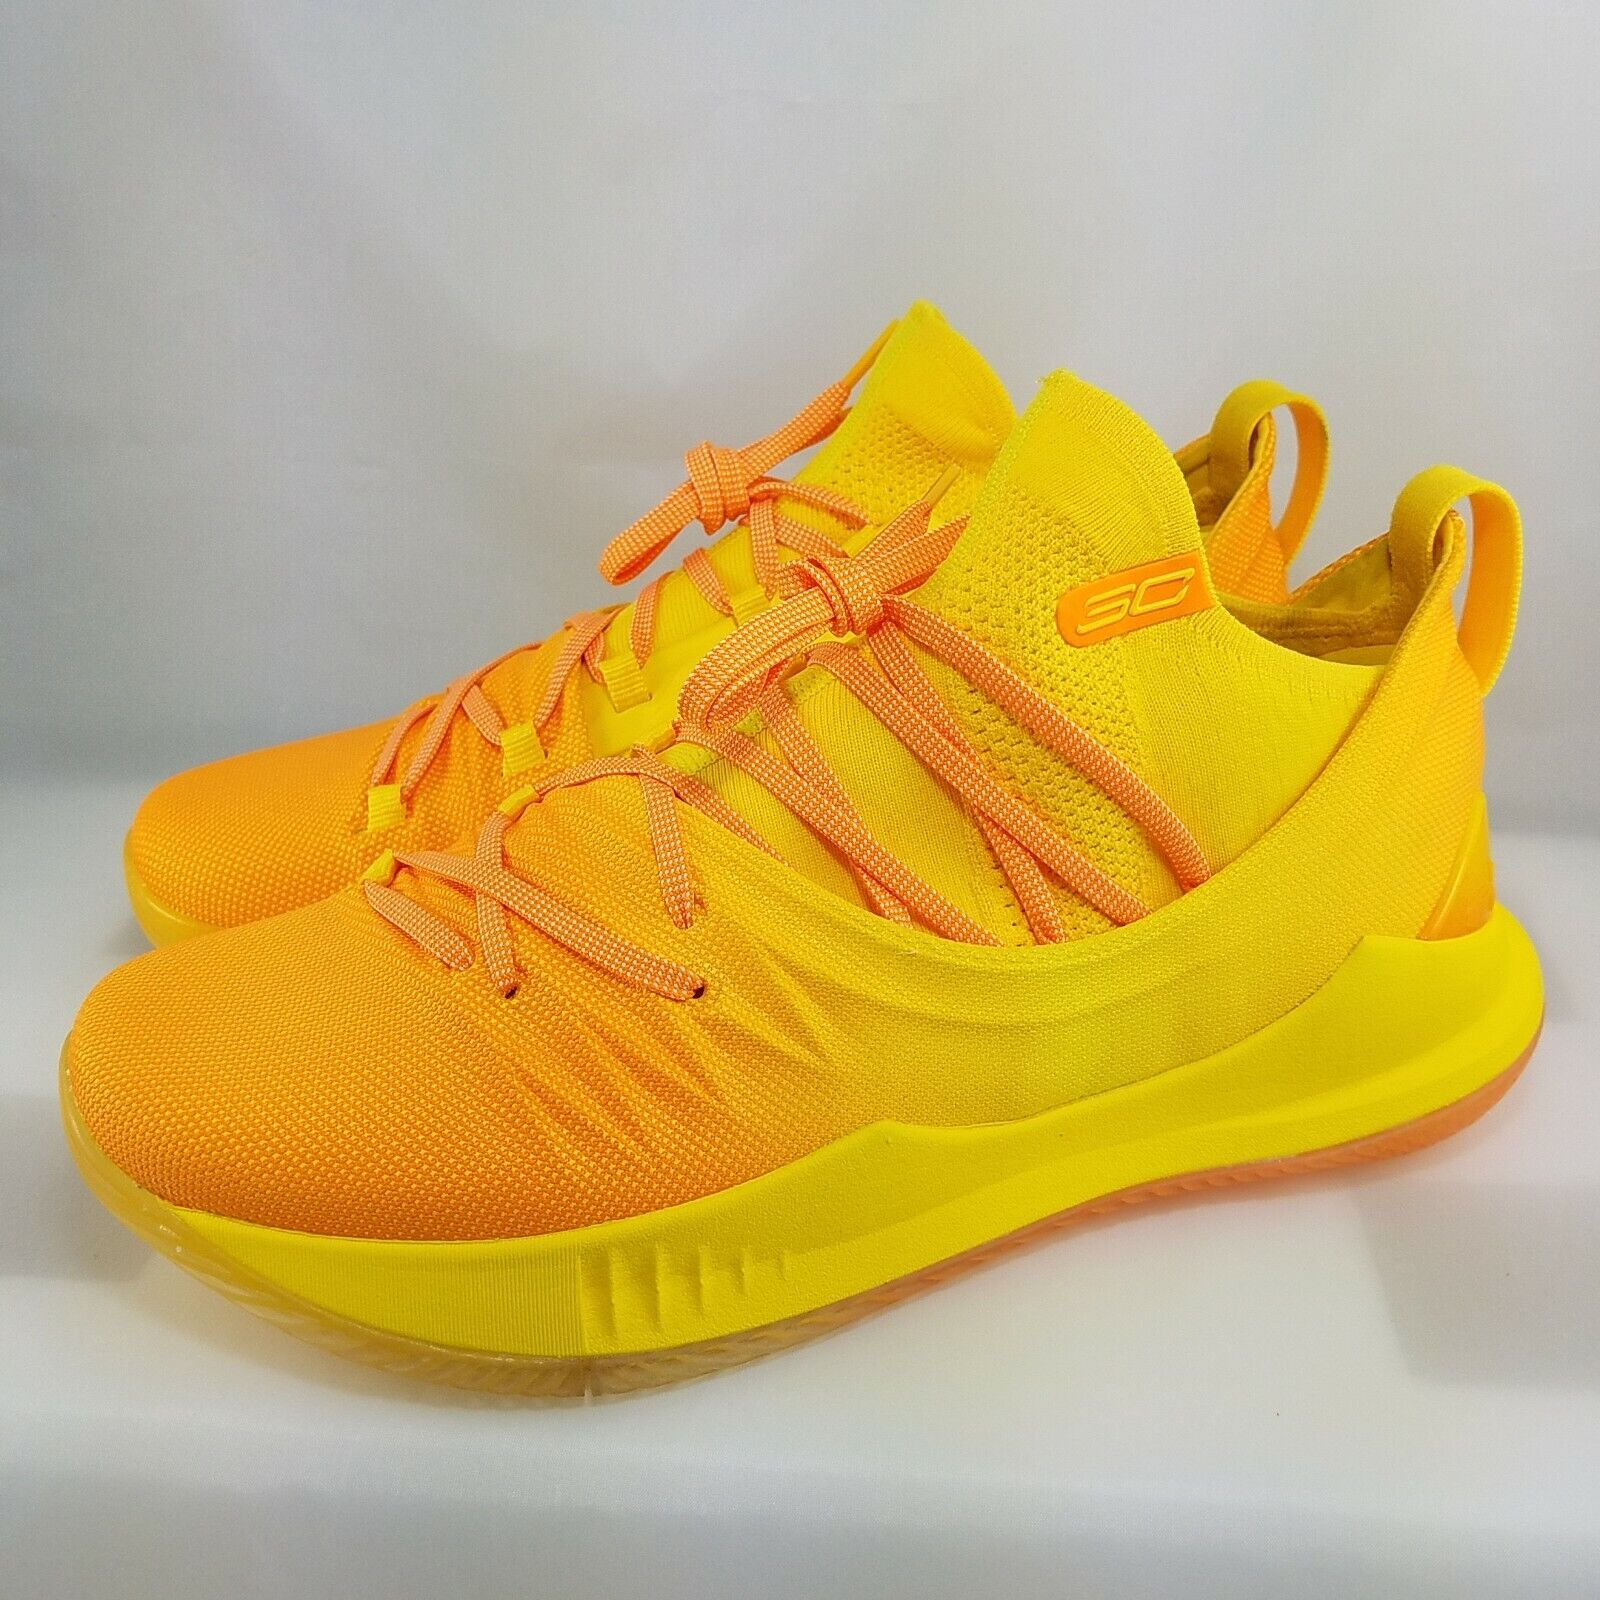 Under Armour Curry 5 Asia Tour Theme Color Limited Exclusive